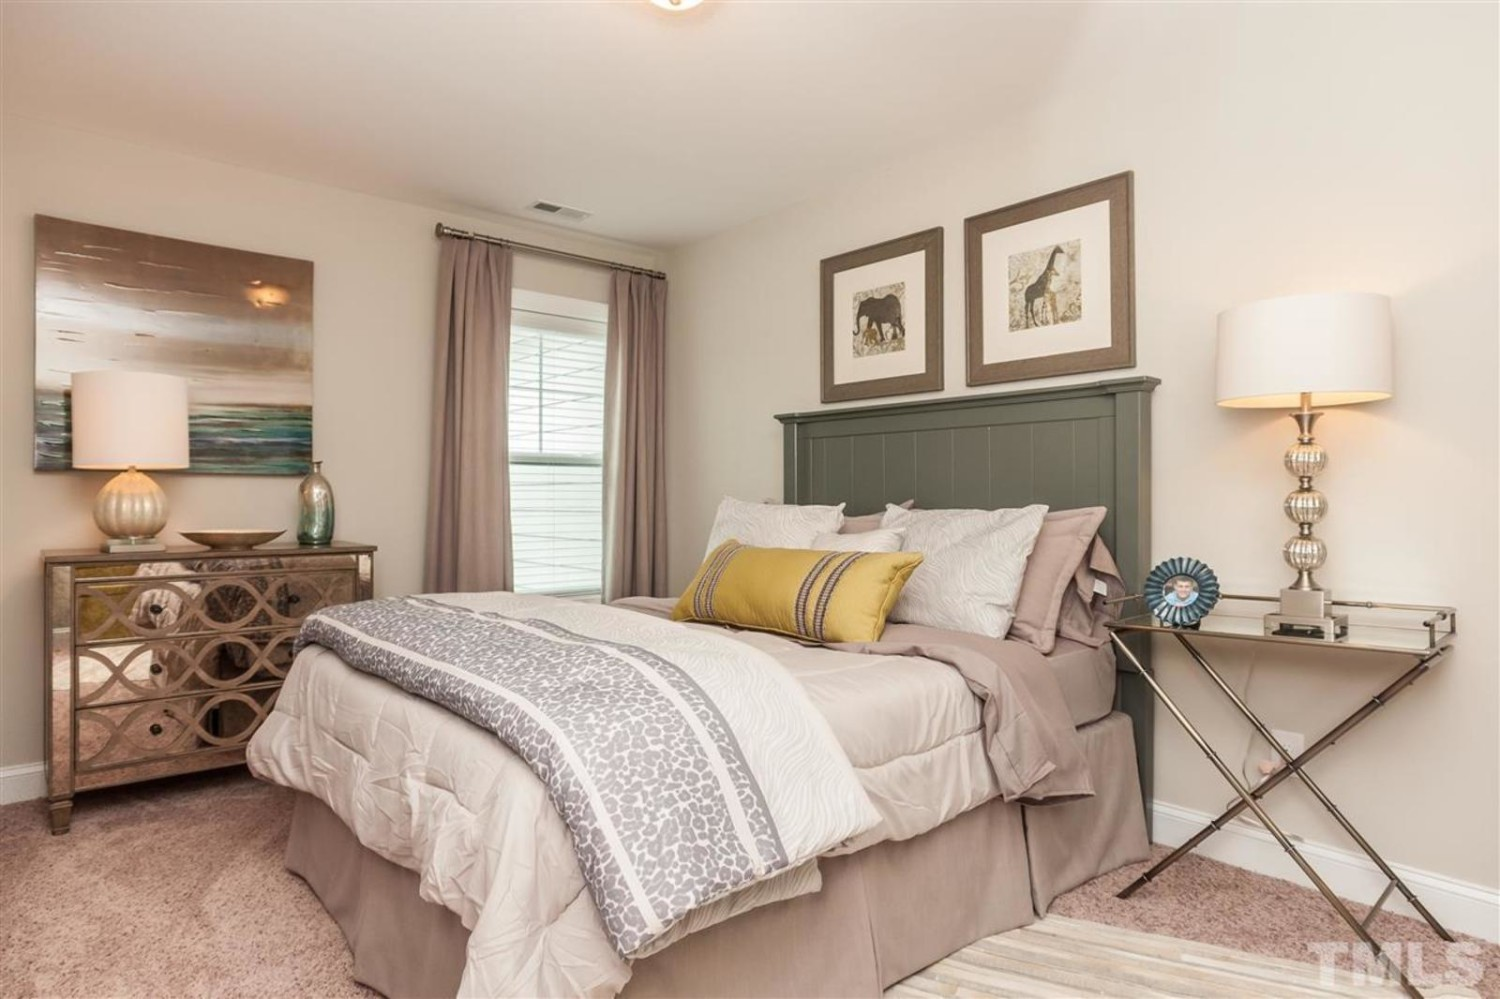 Guest Bedroom Ideas to Make Them Feel at Home - Knightdale Station